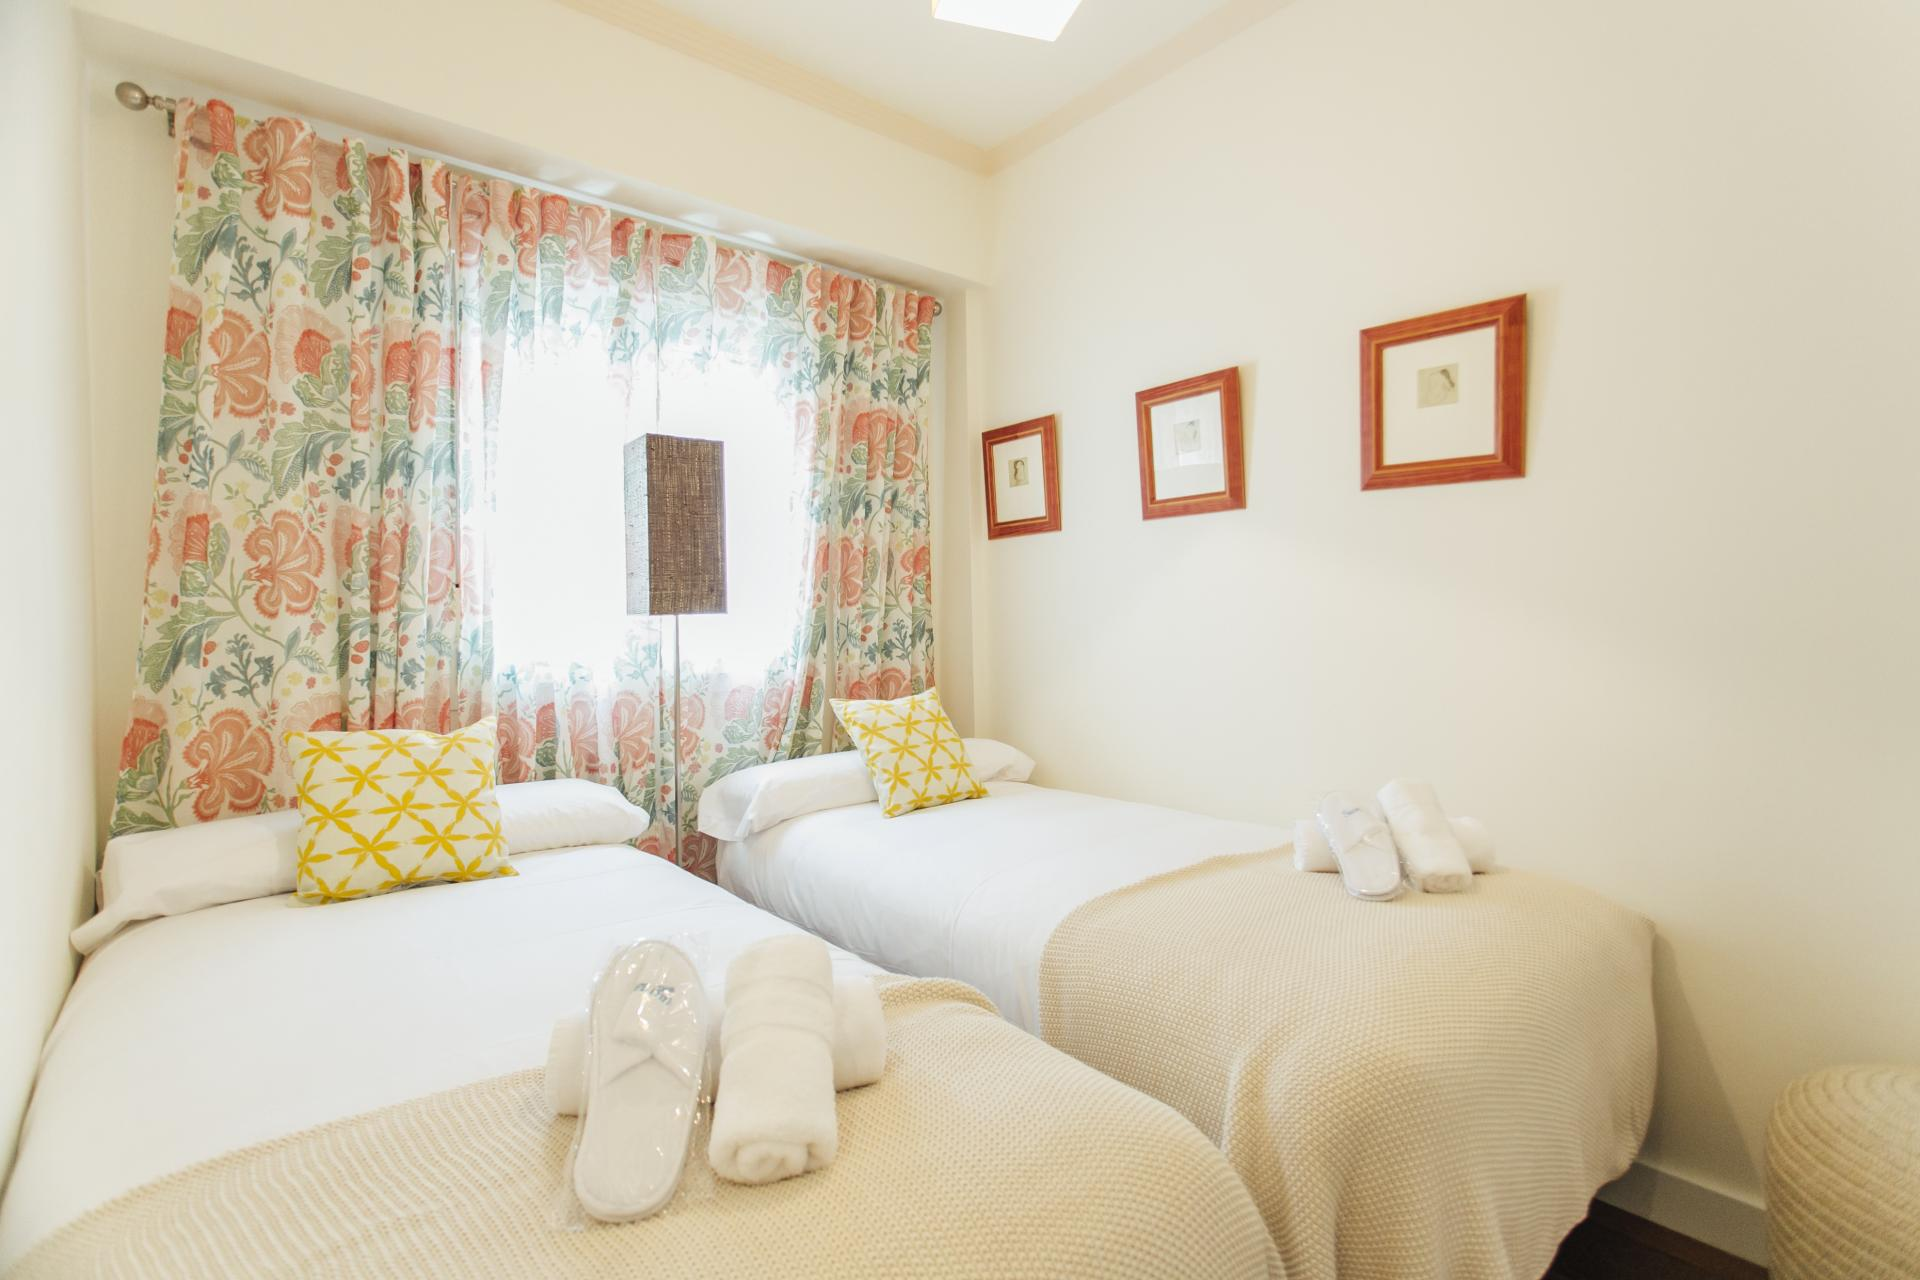 Twin beds at Arjona Apartment, Centre, Seville